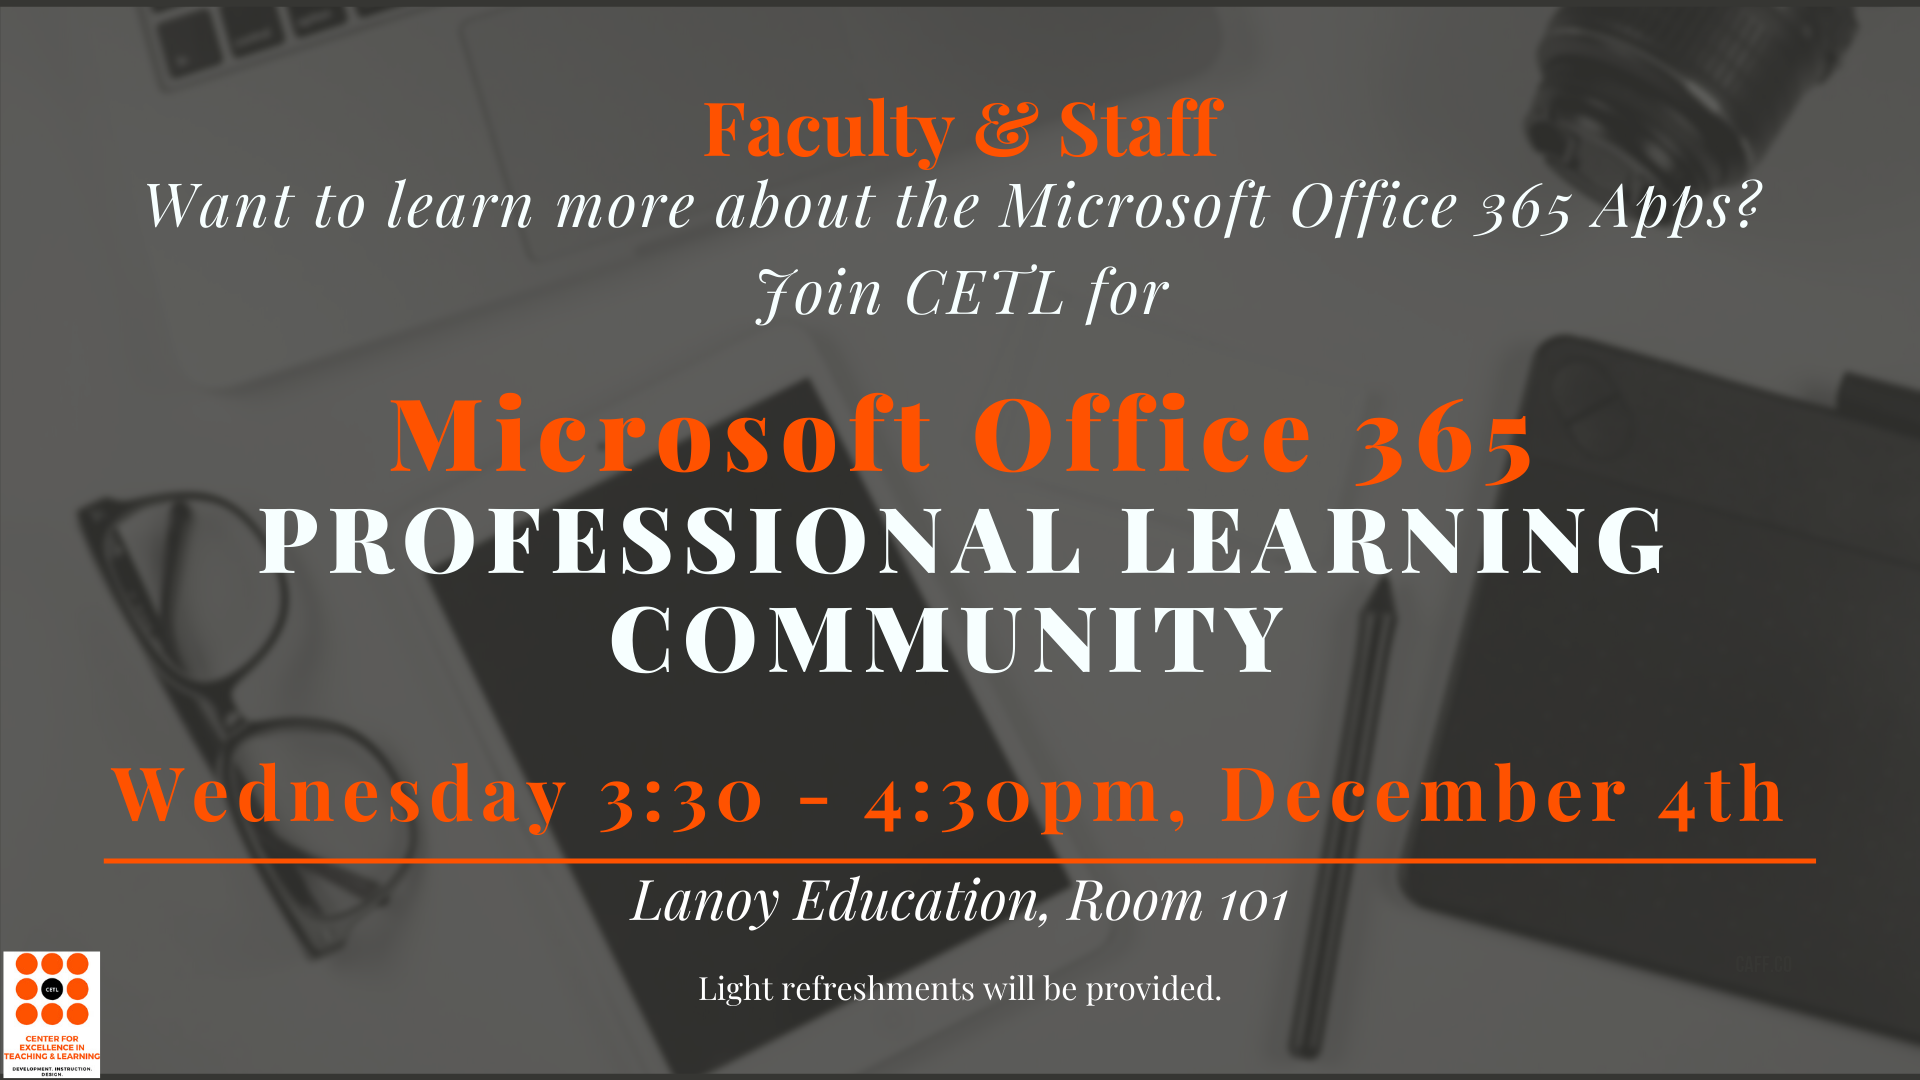 Microsoft Office 365 Professional Learning Community